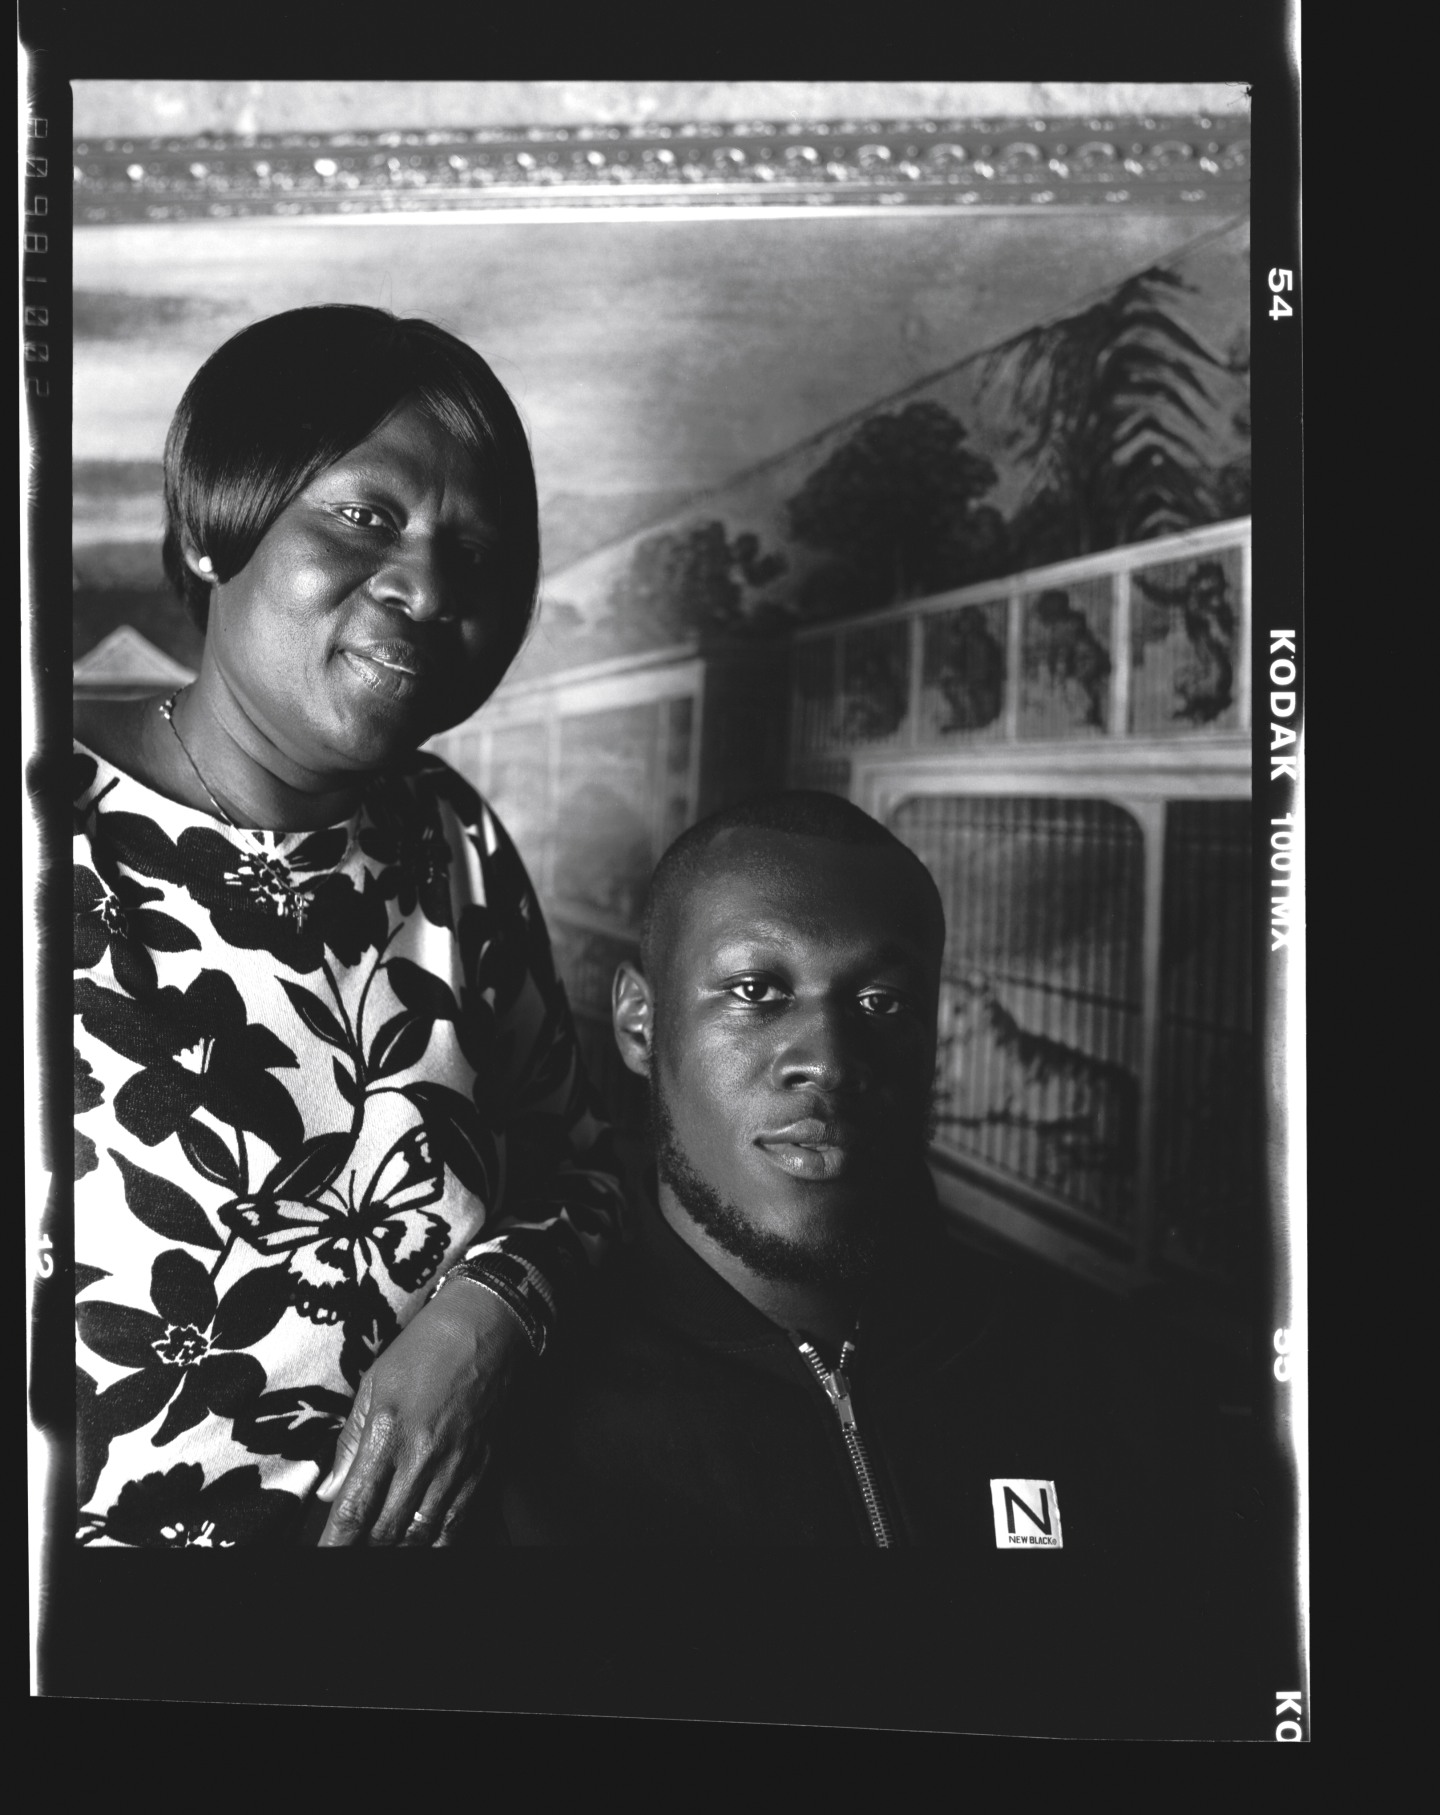 Stormzy's Mom Breaks Down The Personal Secrets Behind Her Son's Public Success